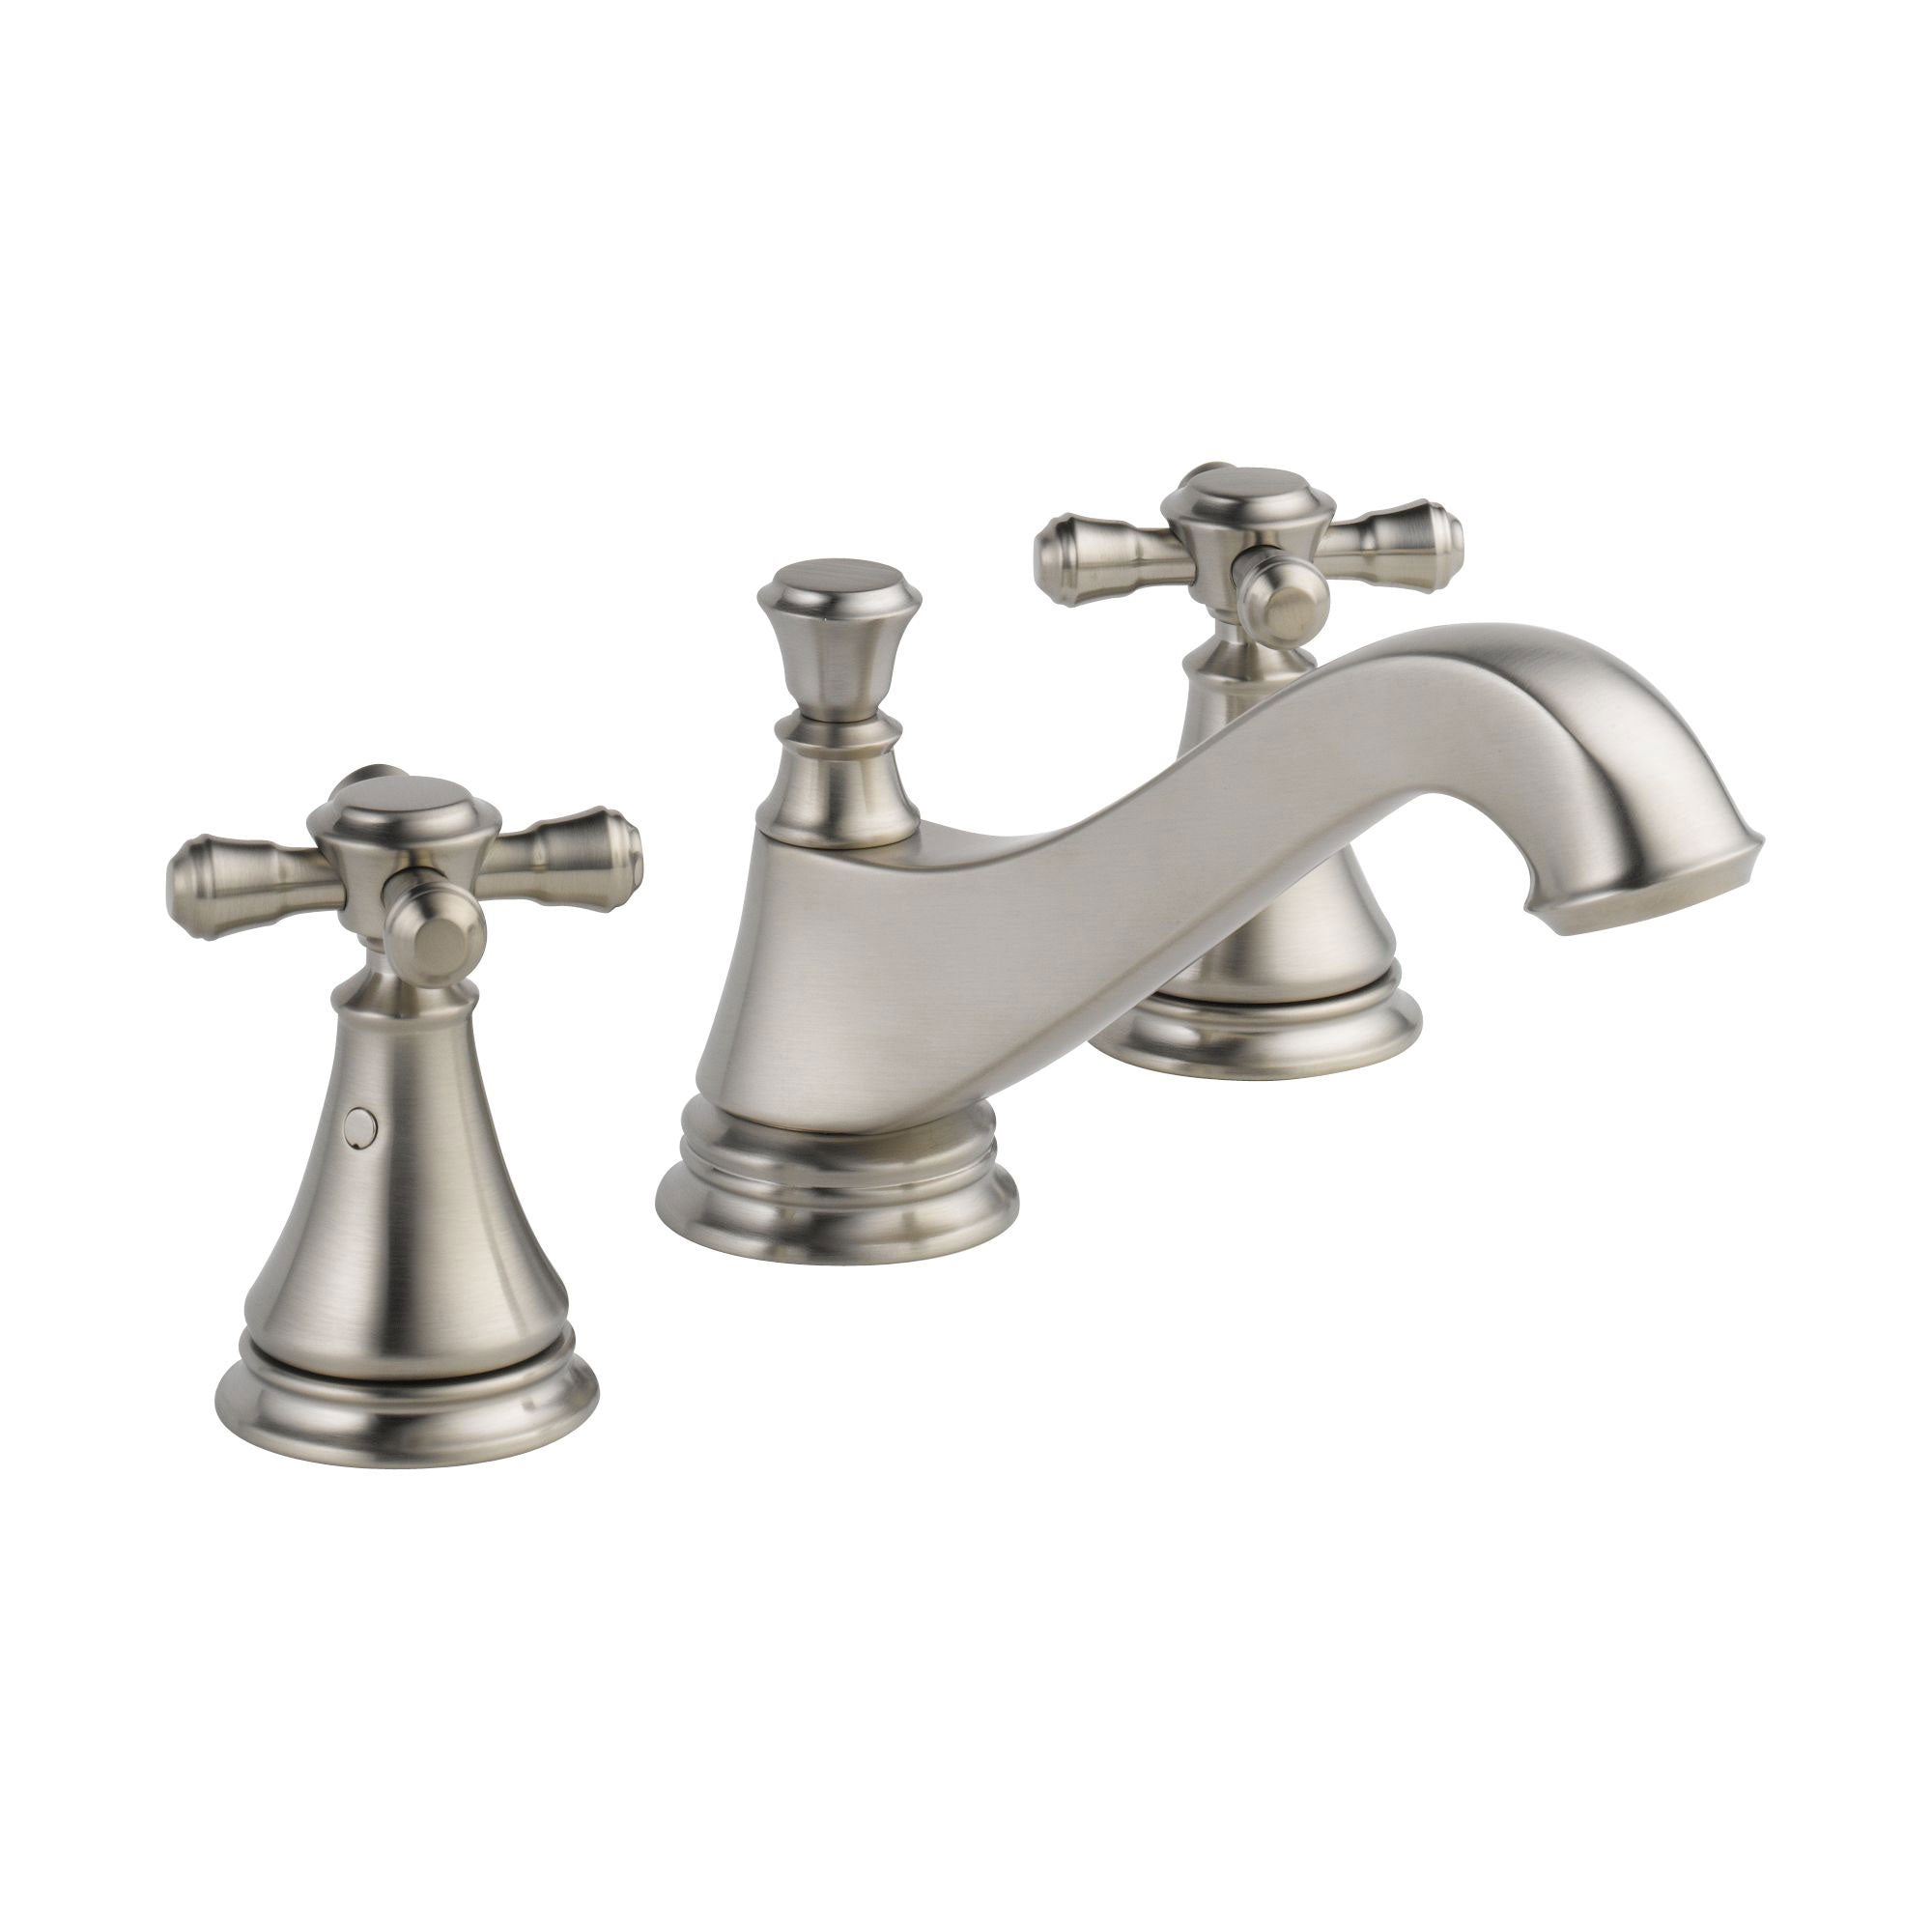 Delta Cassidy Stainless Steel Finish Widespread Lavatory Low Arc Spout Bathroom Sink Faucet INCLUDES Two Cross Handles and Matching Metal Pop-Up Drain D1309V